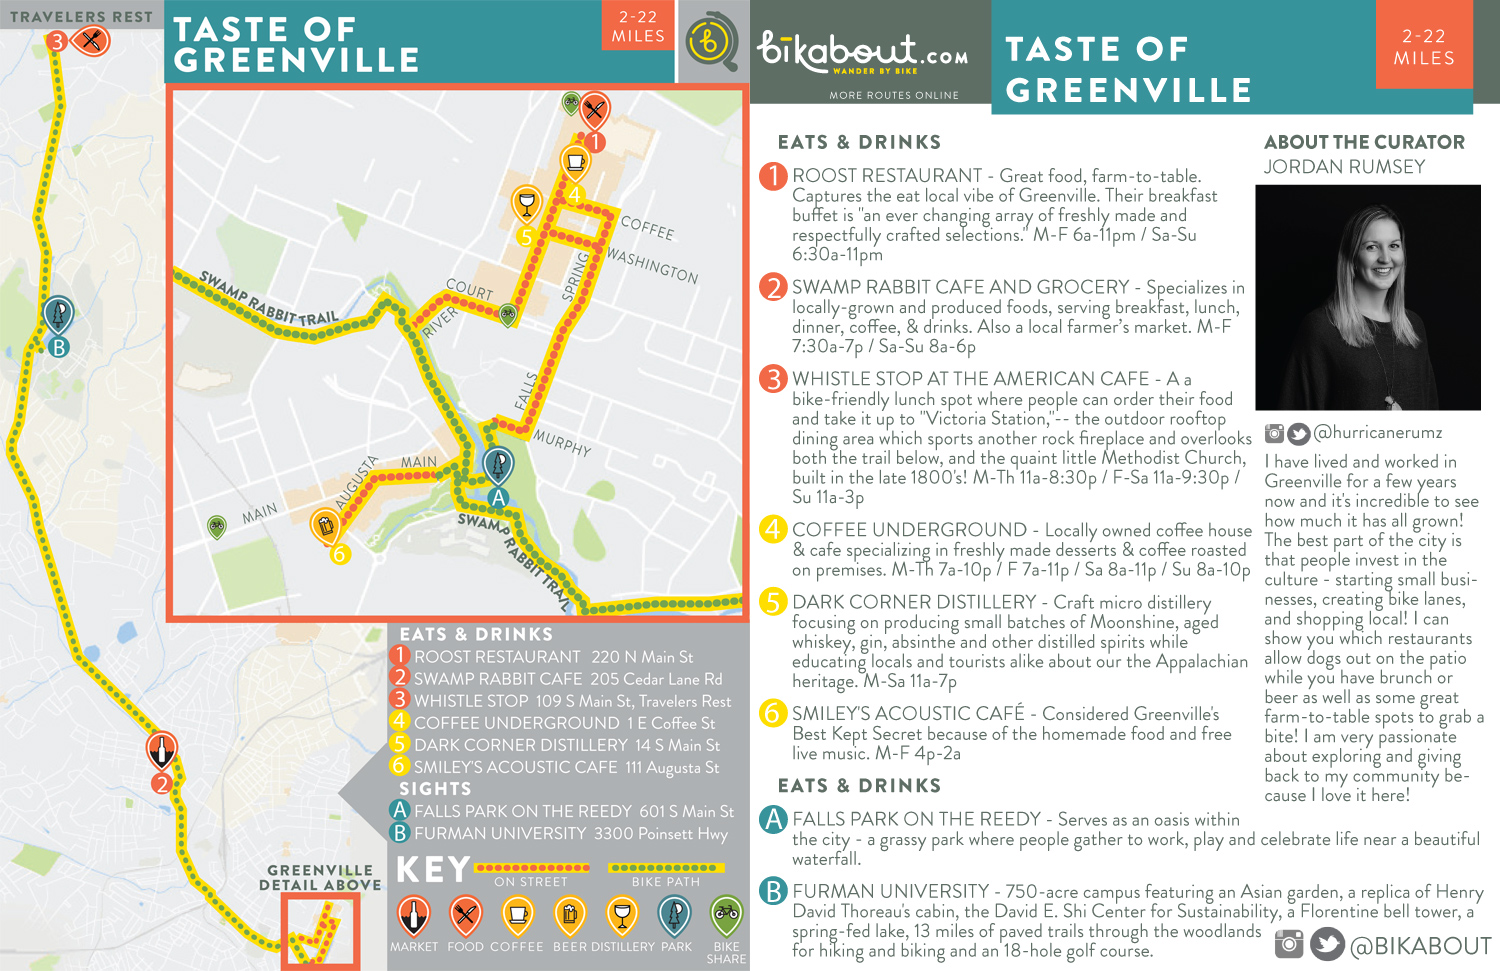 Taste of Greenville map